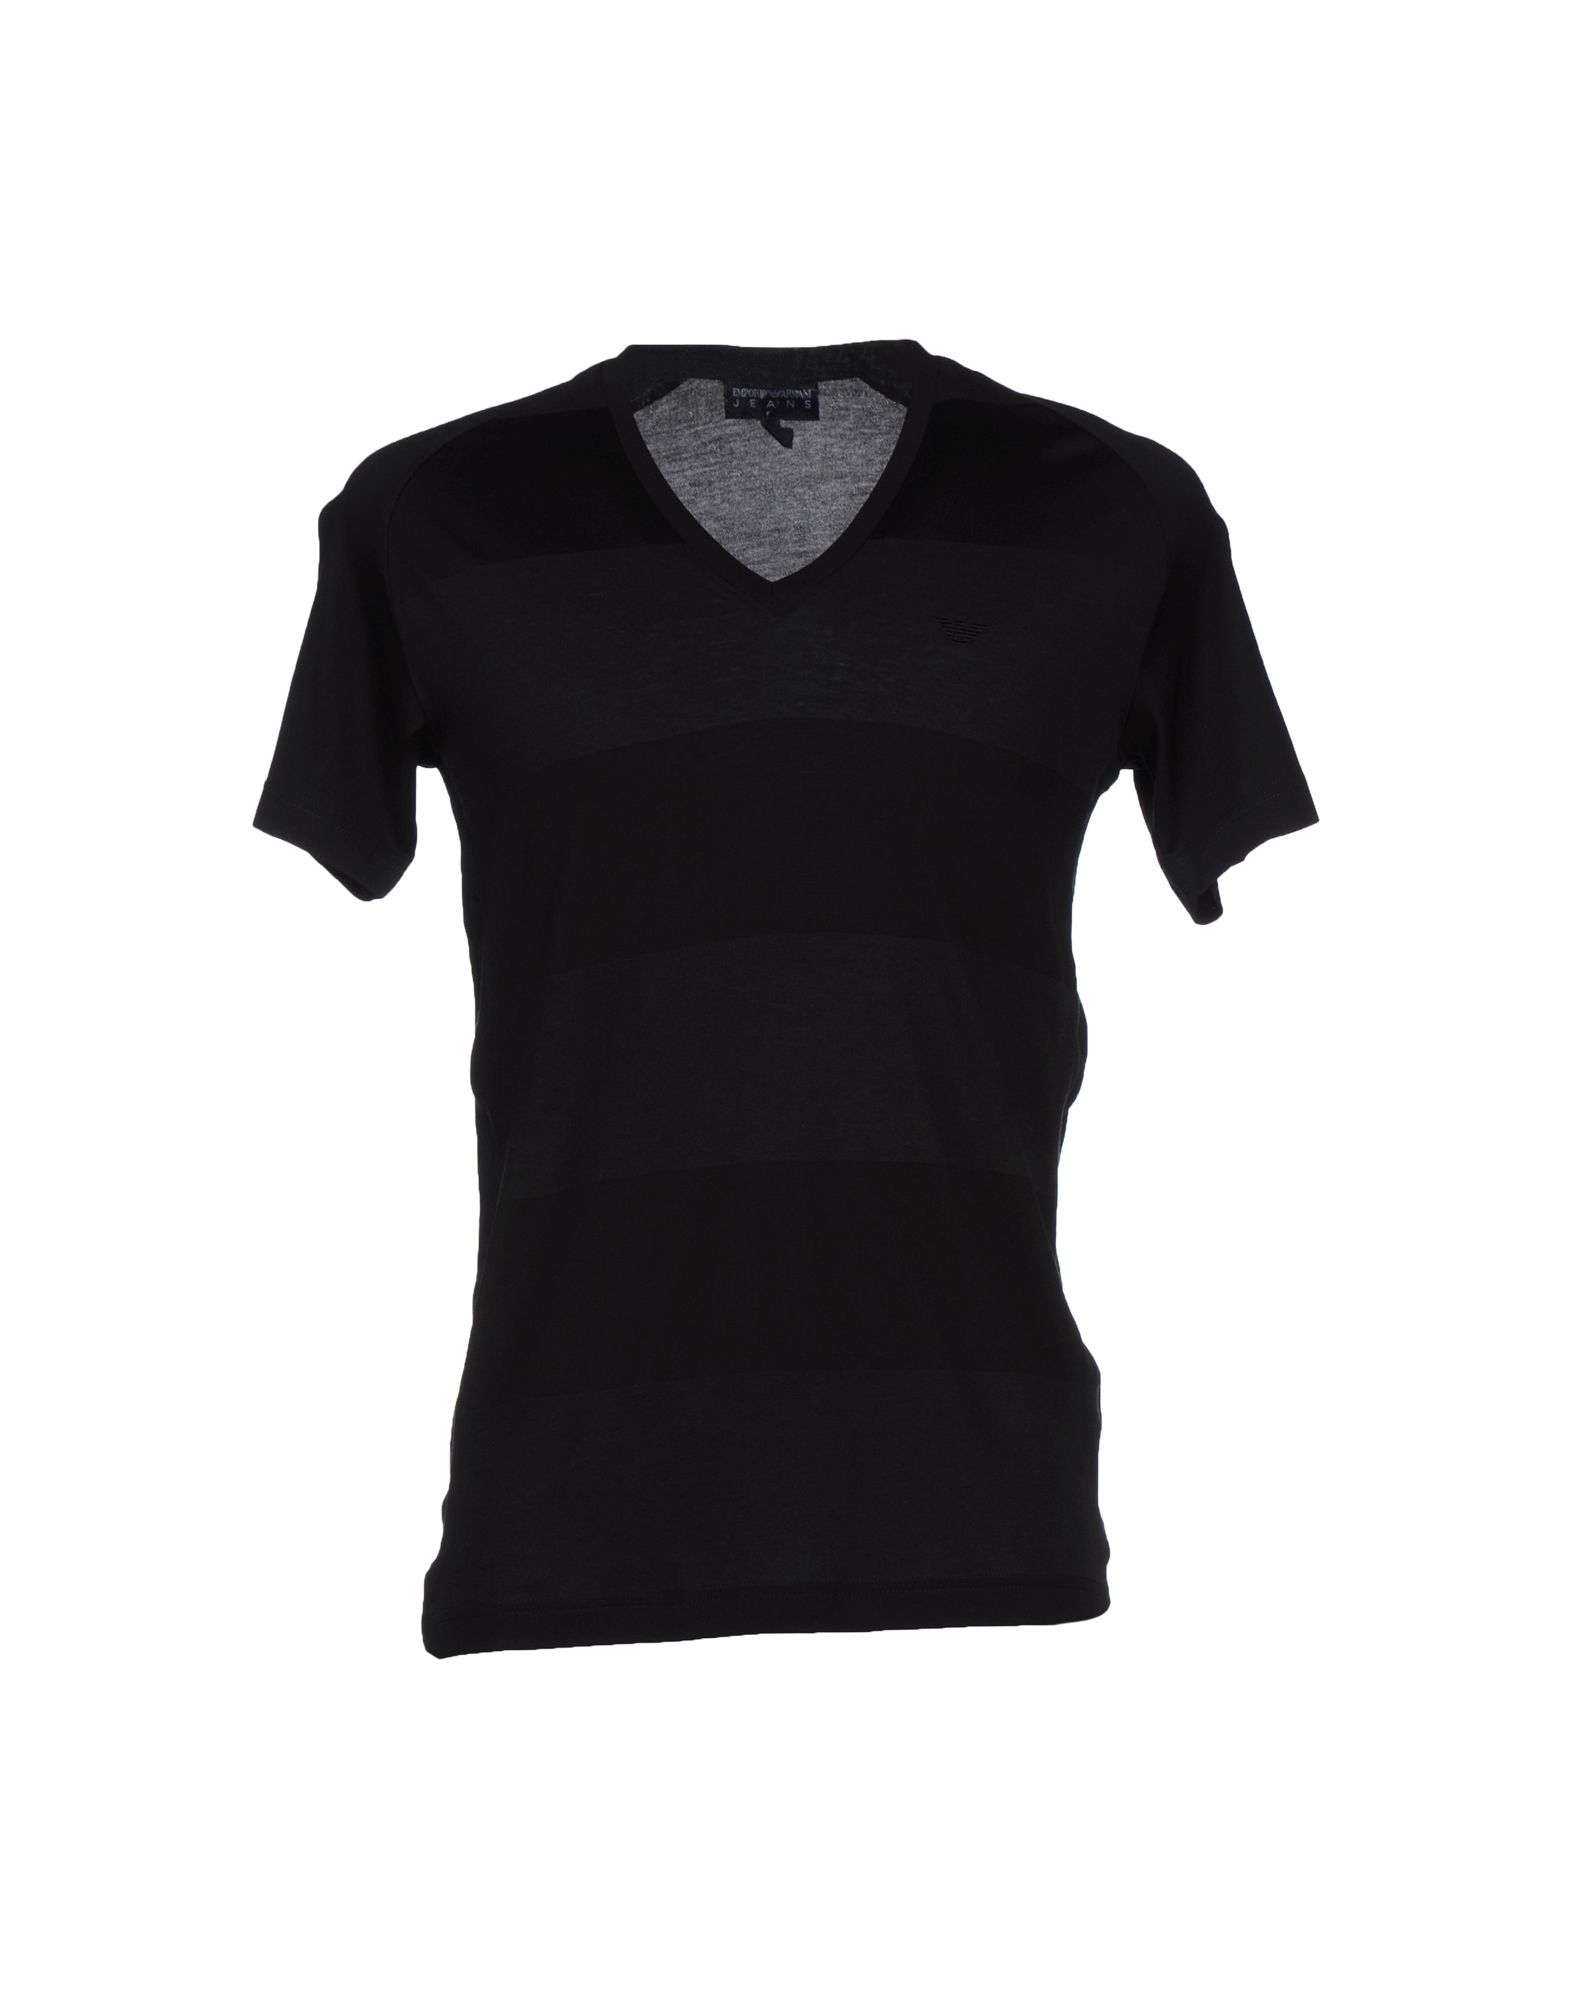 Emporio Armani T Shirt In Black For Men Save 67 Lyst